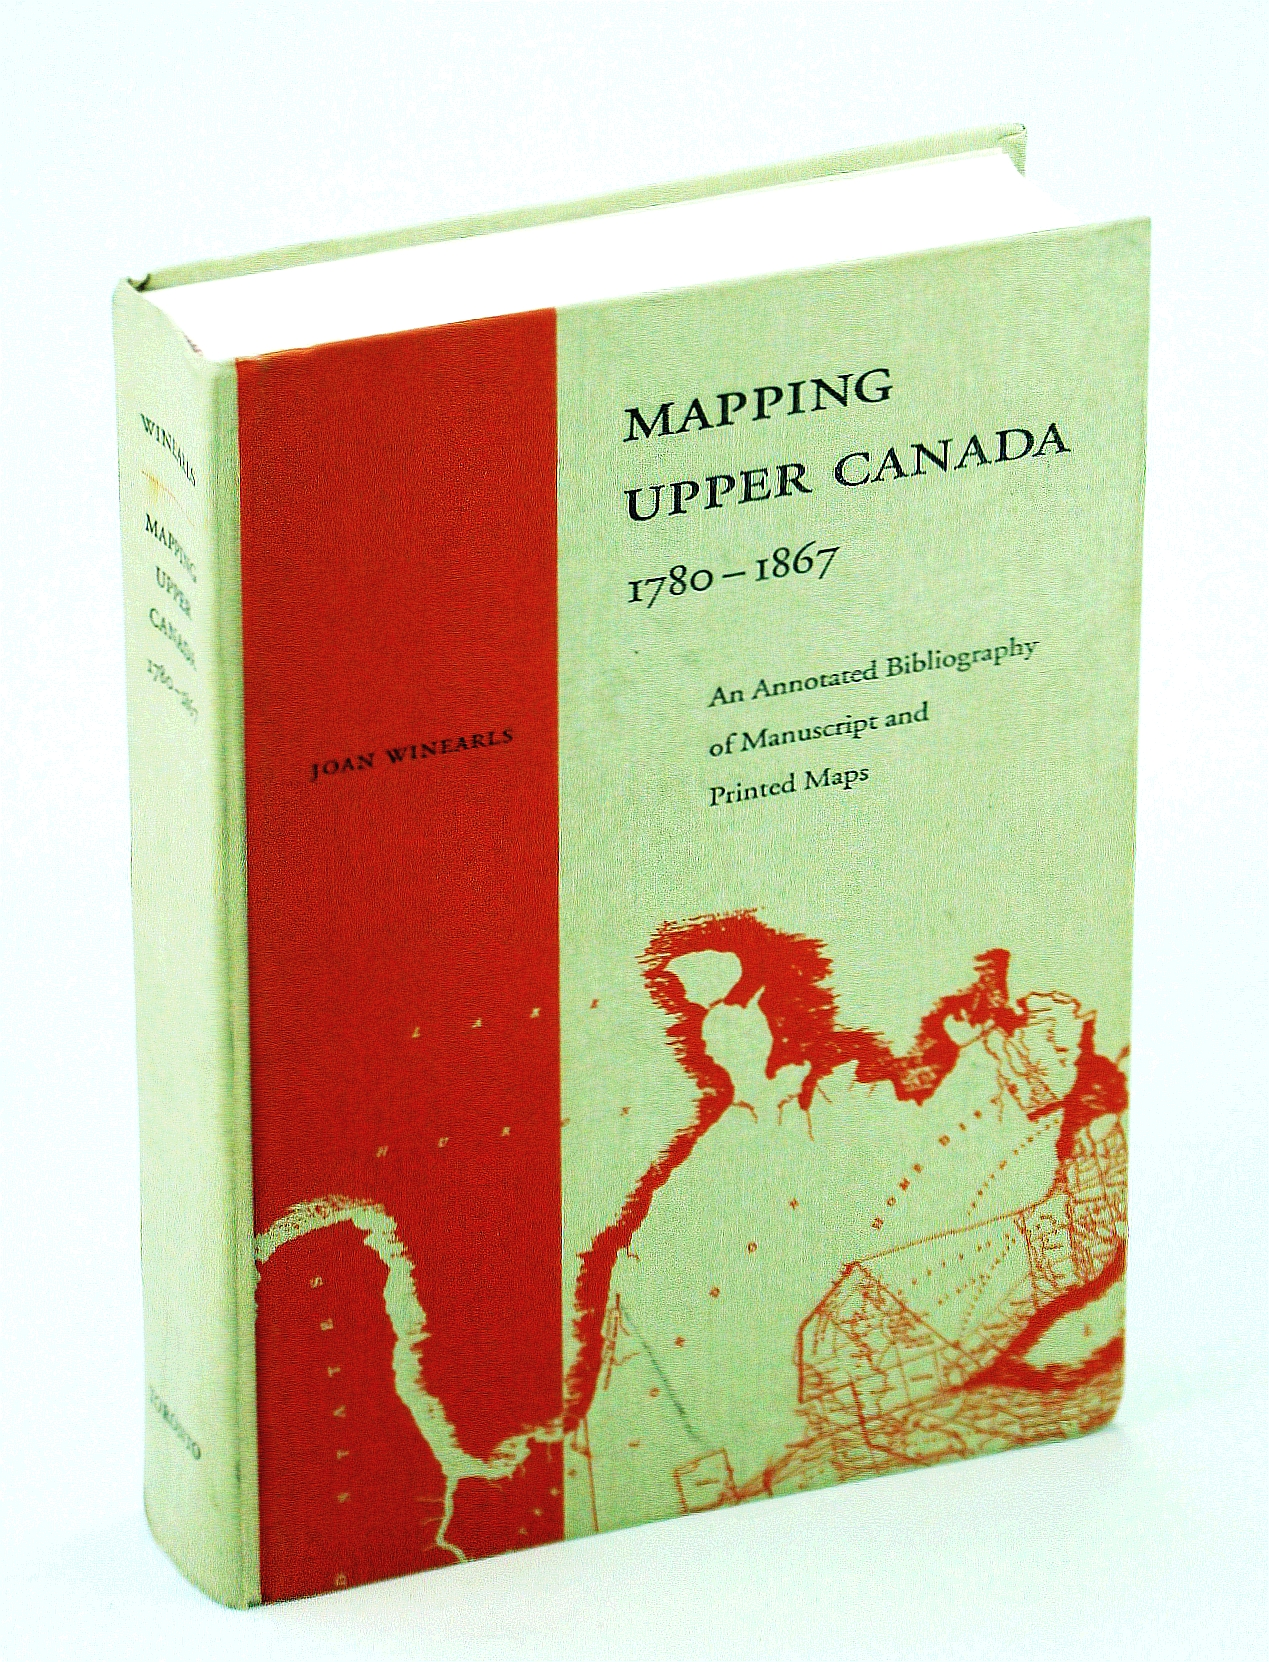 Image for Mapping Upper Canada, 1780-1867: An Annotated Bibliography of Manuscript and Printed Maps